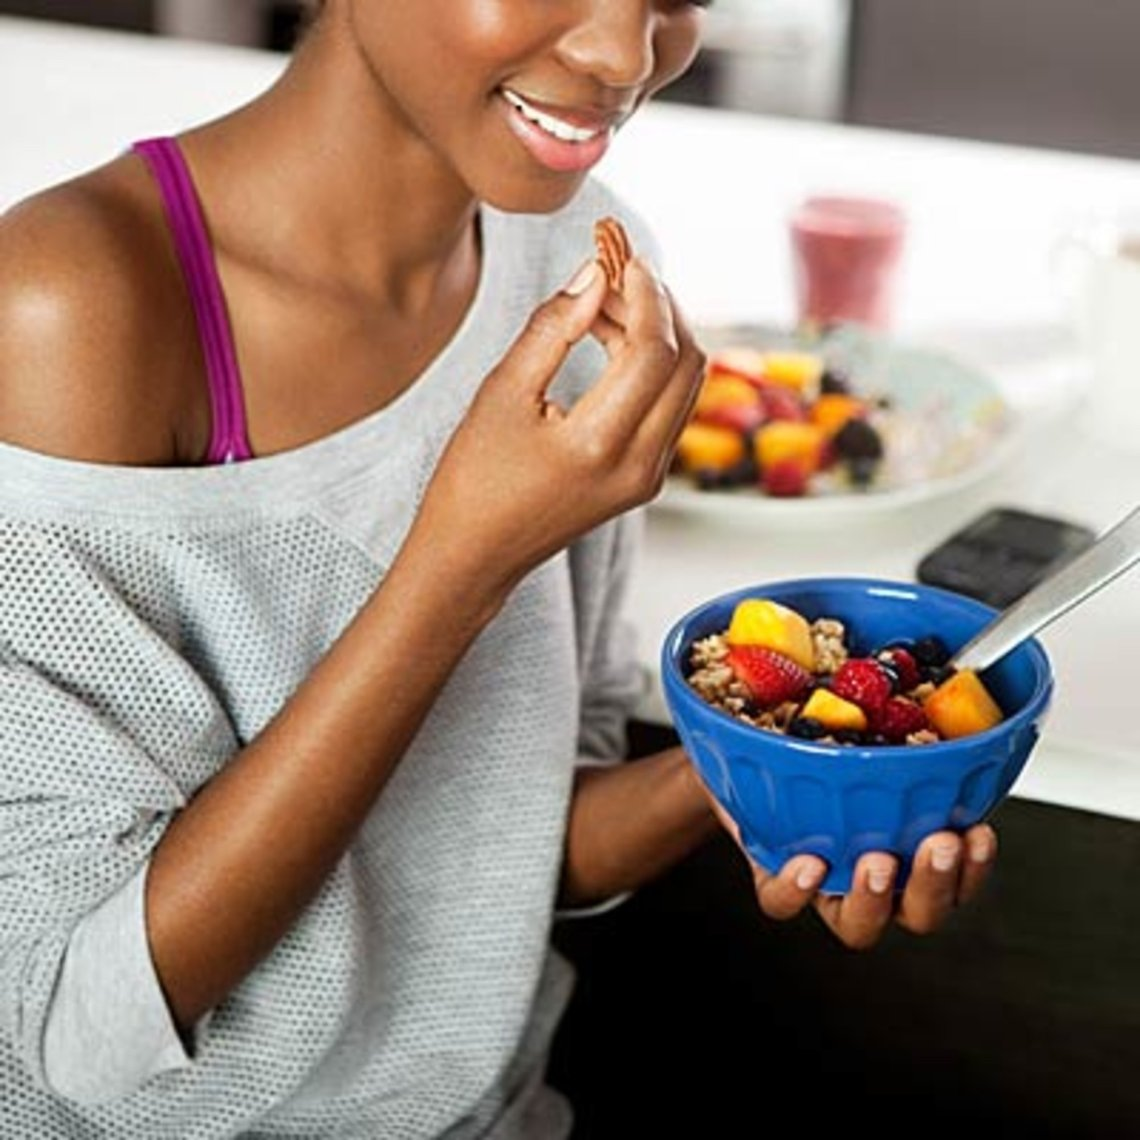 10 Healthy Eating Tips To Help You Stick With Your Die